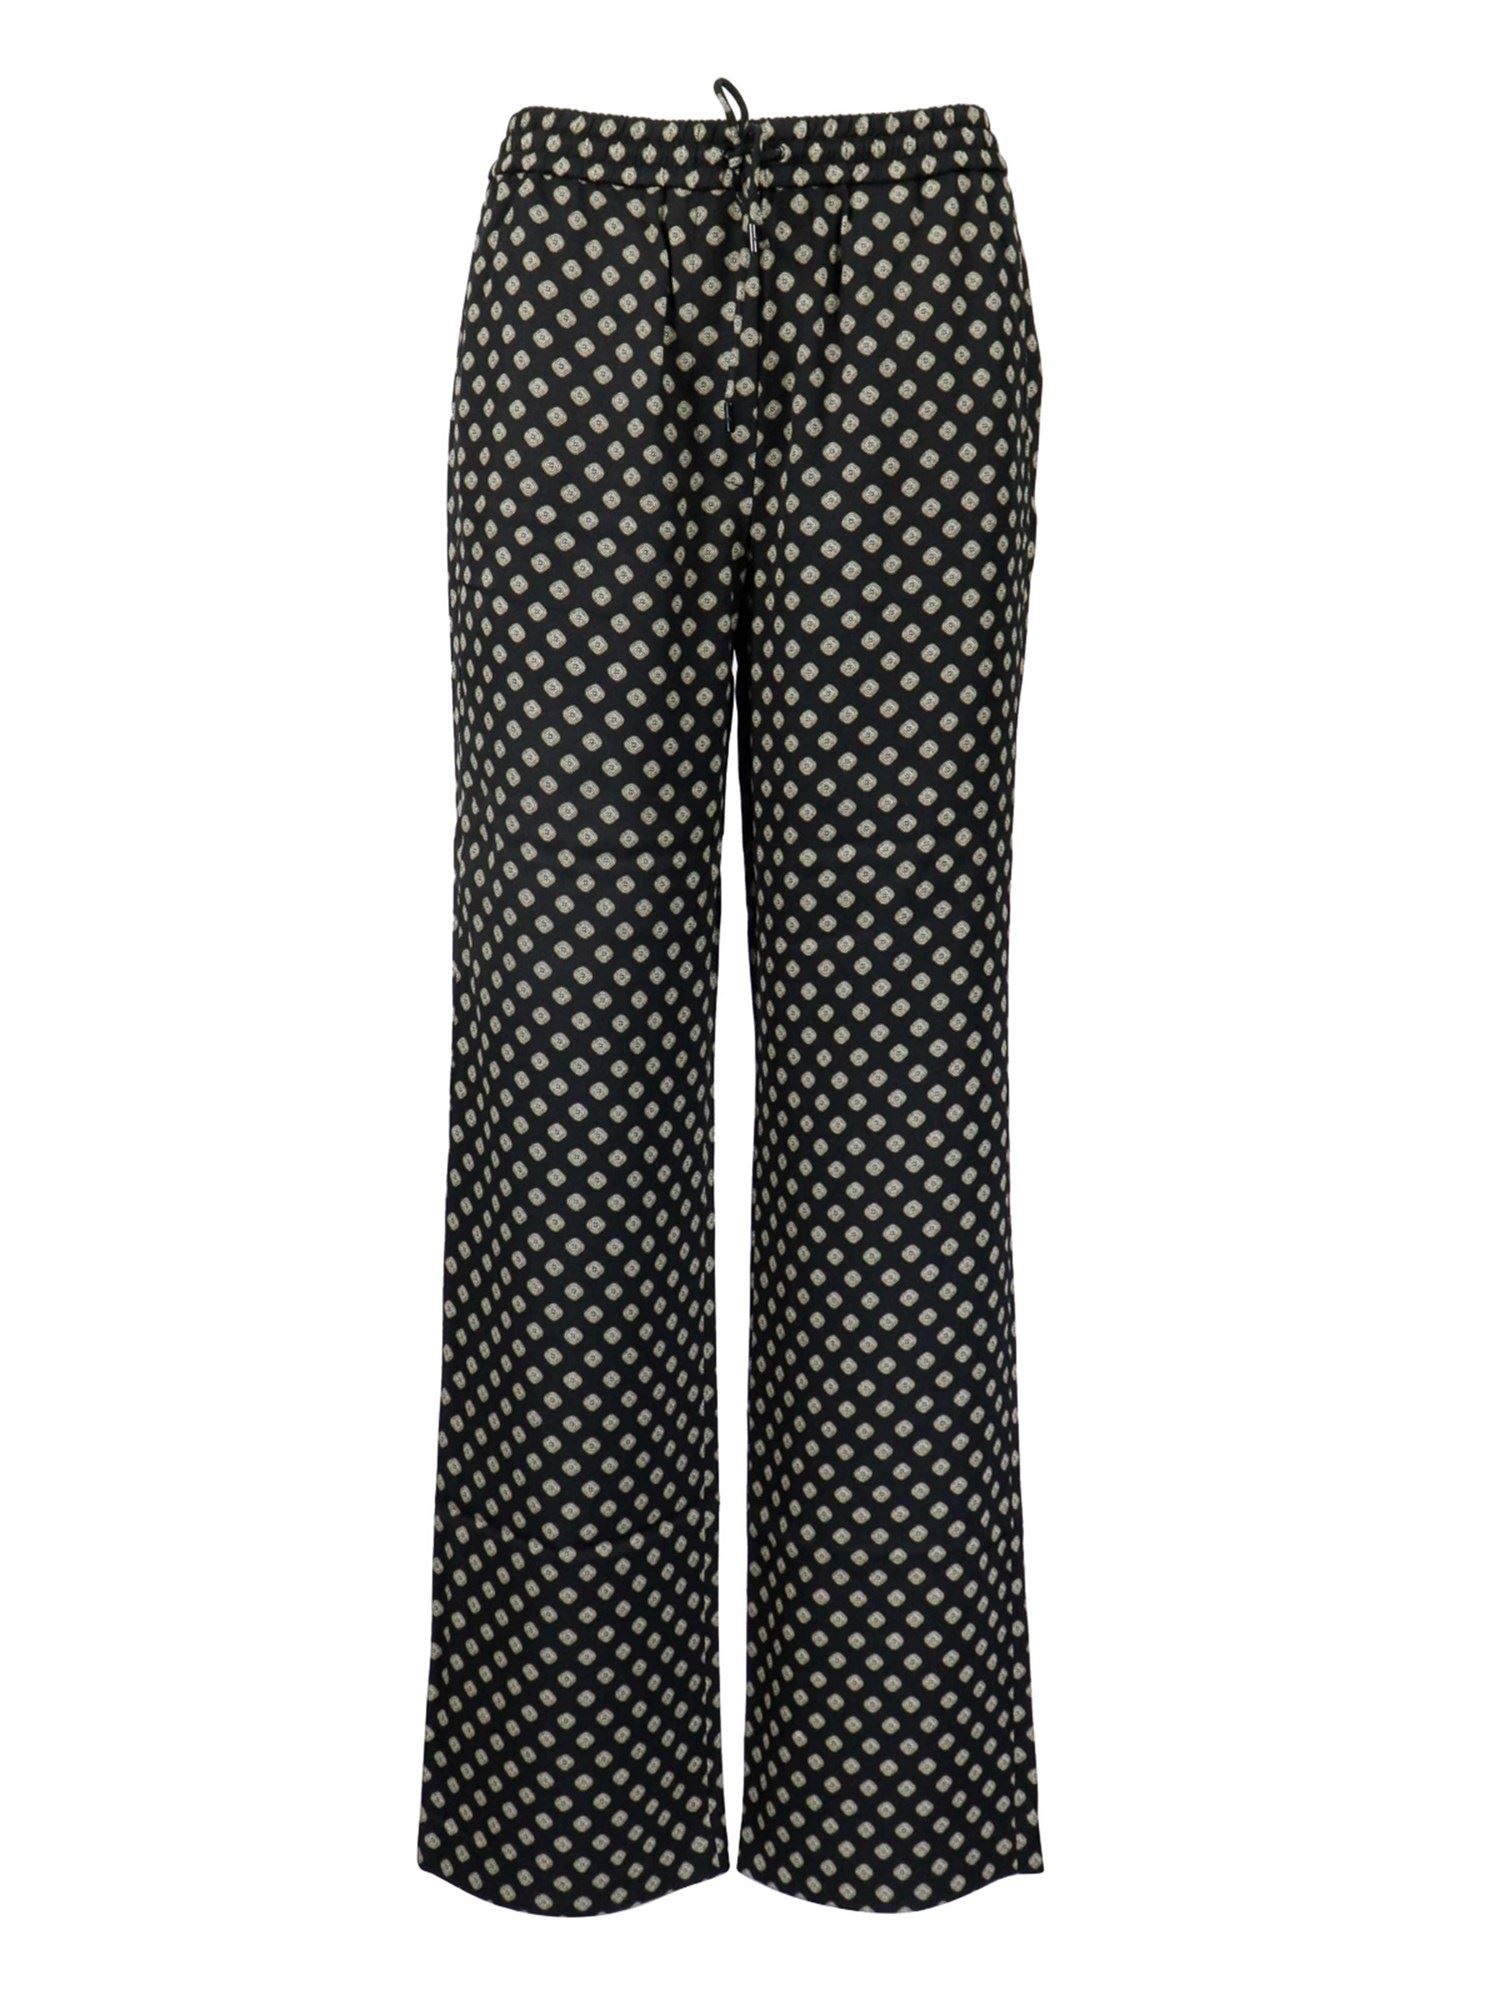 Michael Kors POLKA DOTS VISCOSE TROUSERS